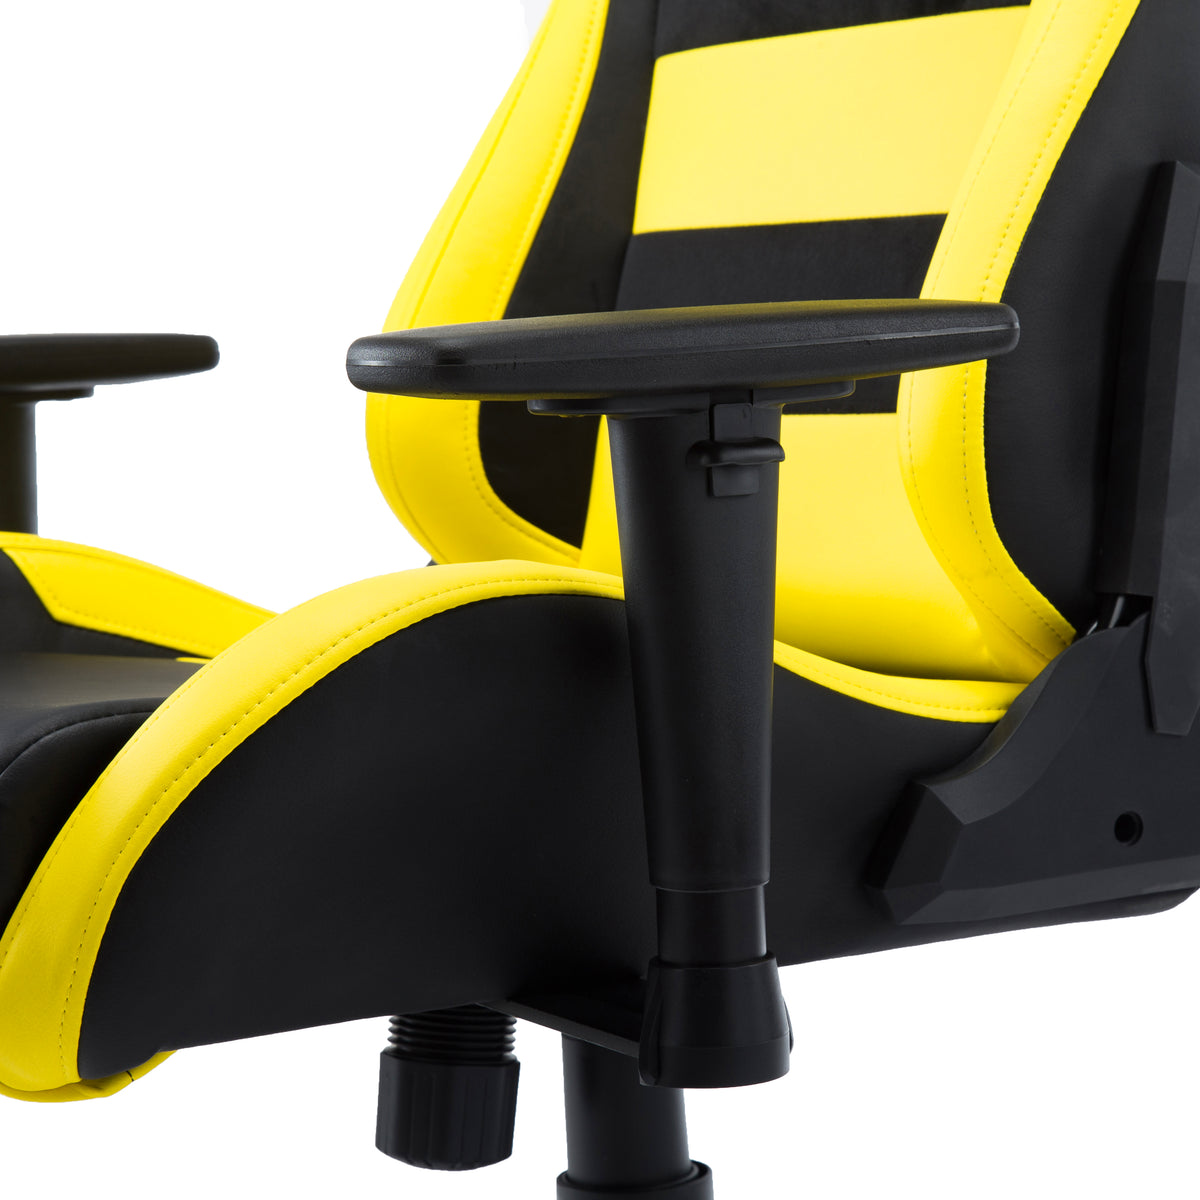 Techni Sport TS-91 Office-PC Gaming Chair, Yellow